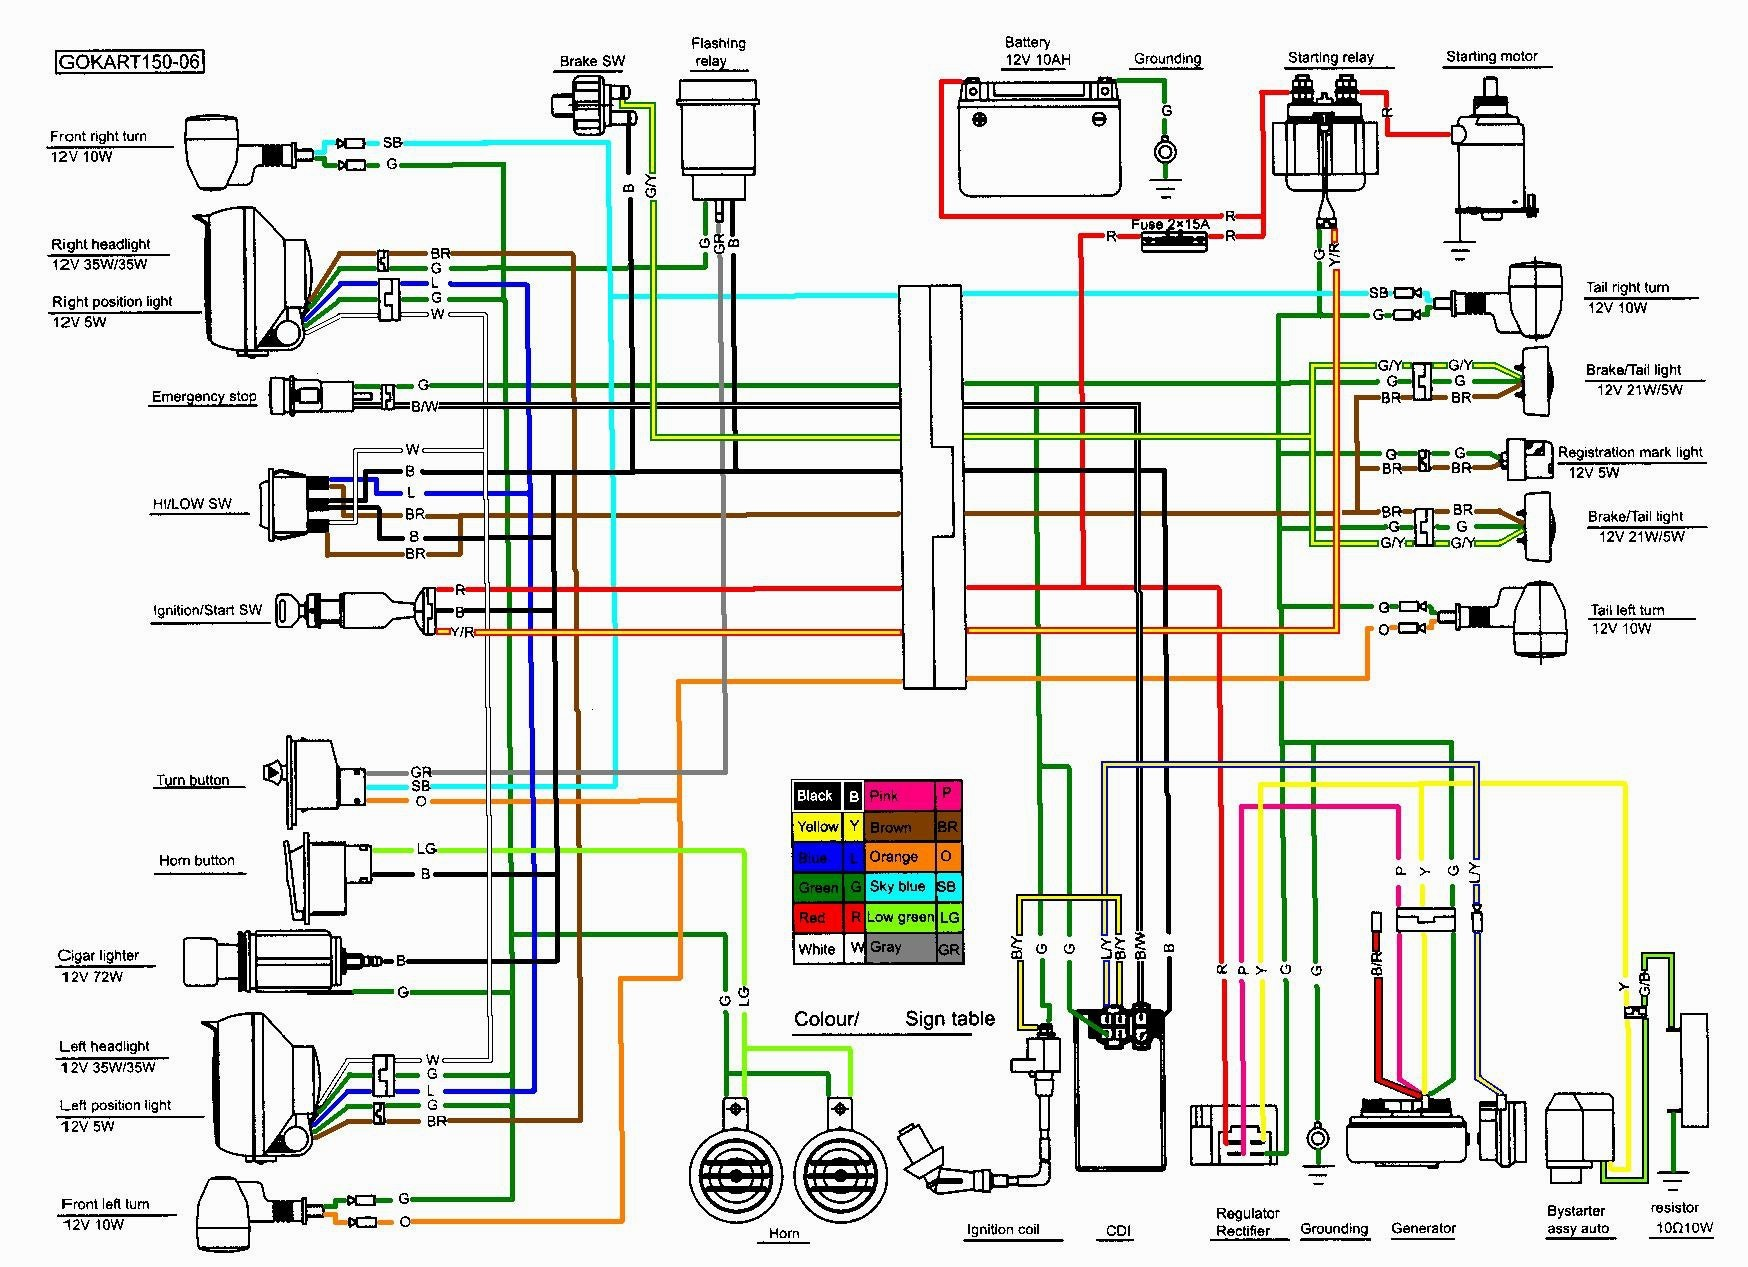 Gy6 90cc Wiring Diagram - Wiring Diagrams Tabel Baja Cc Wiring Harness on baja filter, baja 90 four wheeler, baja 50cc, baja 90 parts, baja 49cc, baja dirt runner, baja quad,